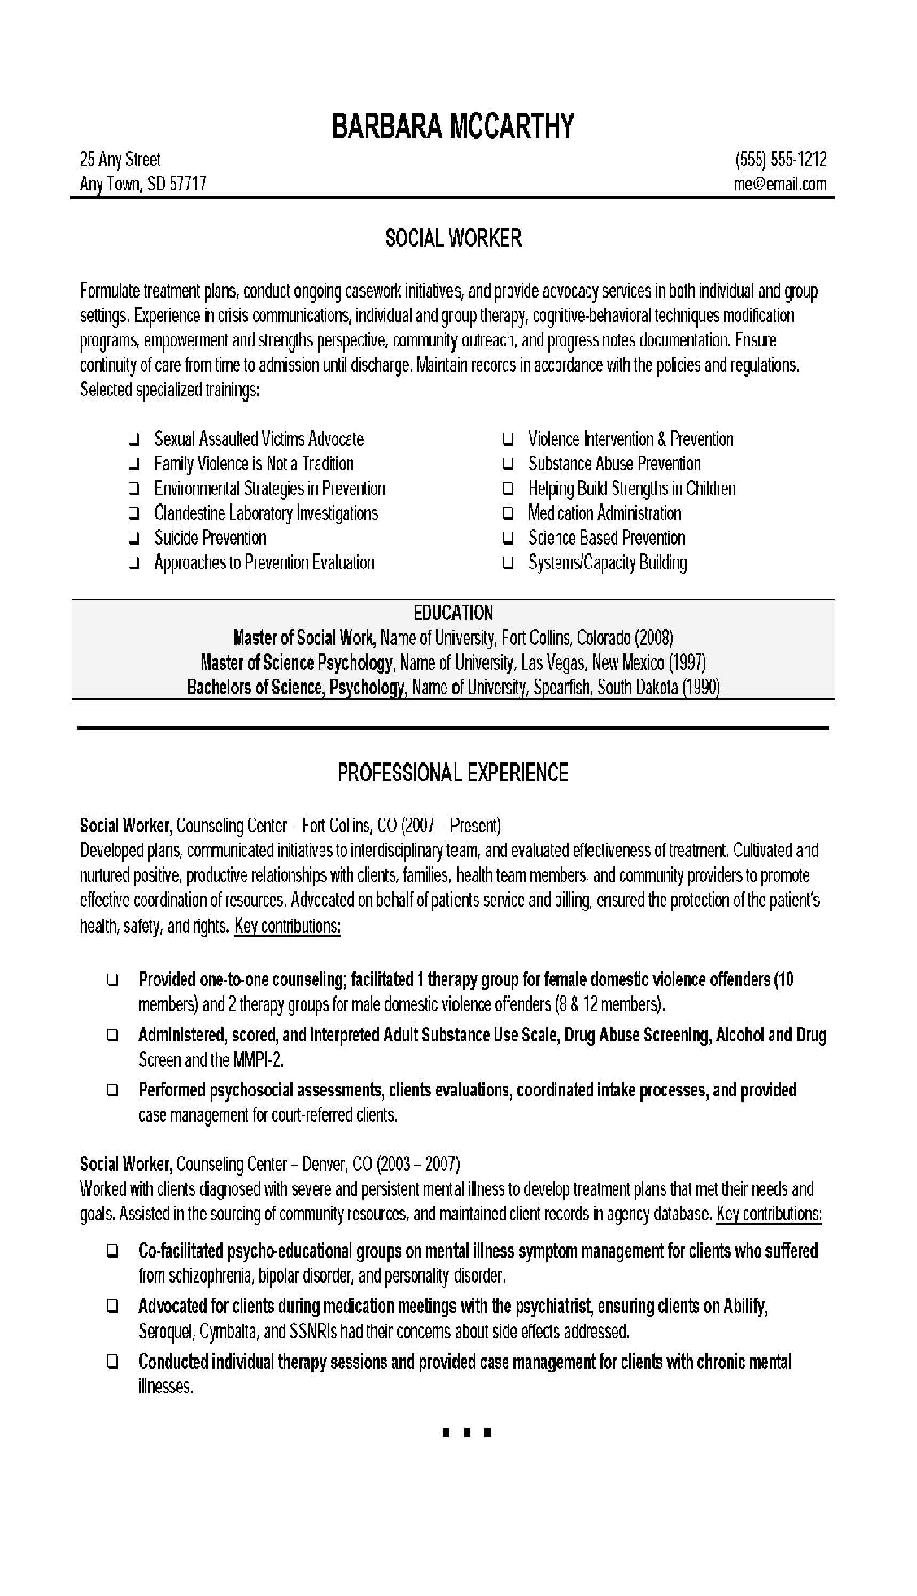 free social work resume templates to goals and objectives